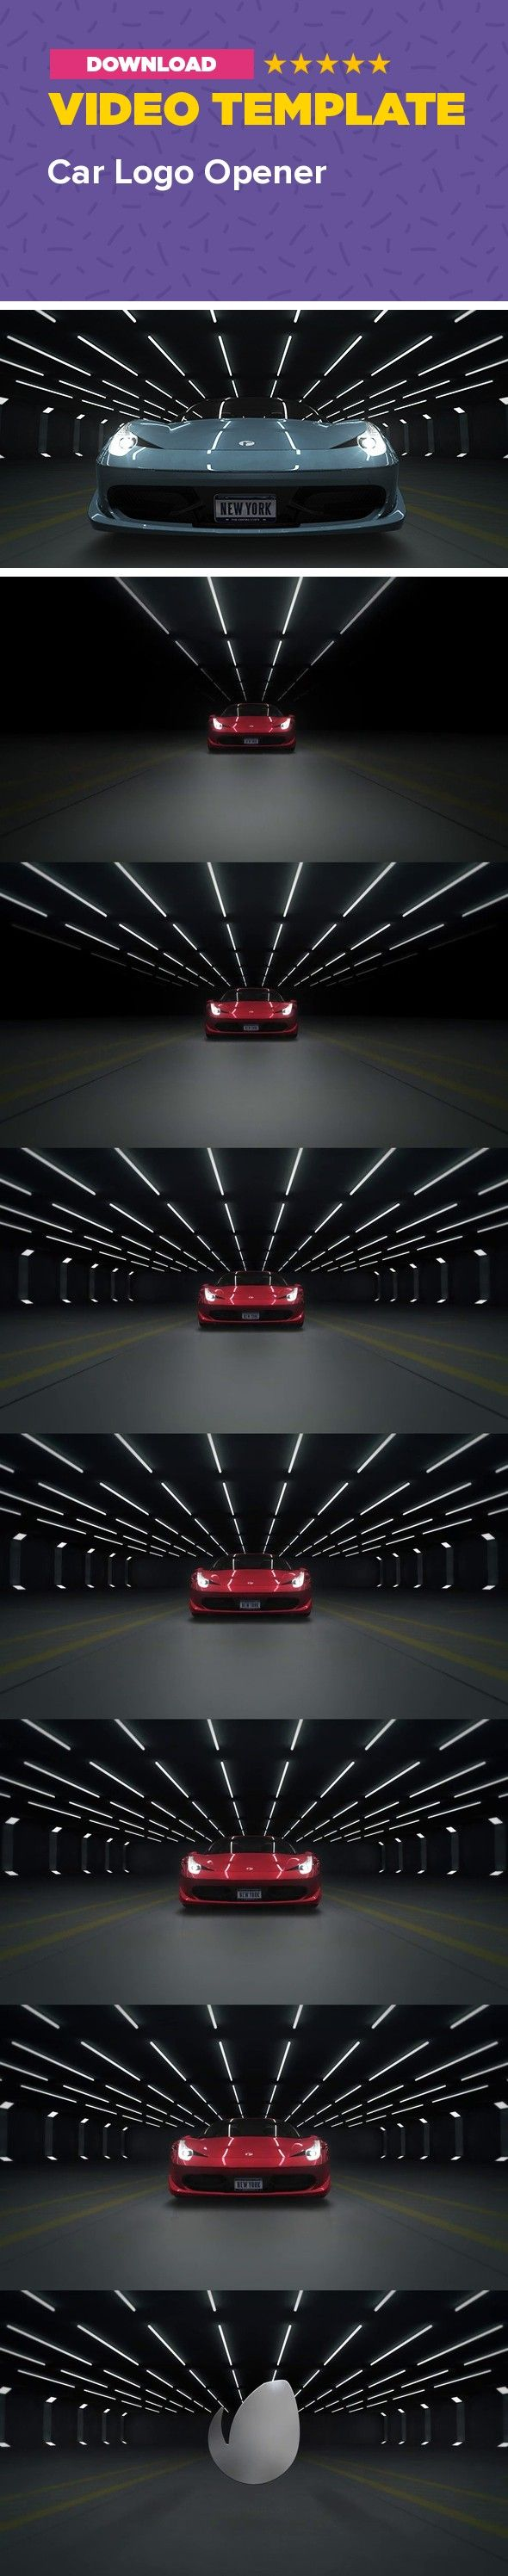 3d, auto, car, drive, engine, fast, ferrari, garage, light, logo, race, racing, show, speed, sport Car Logo Opener is an After Effects project with pre-rendered 3D content.   It features sport car (Ferrari 458 Italia) revving on the parking lot, with incredible sound and visual effects.  You can easily change color of the car, drop your own emblem on the hood and put in your own front license plate. I hope you'll enjoy it!          CS4 /CS5/CS5.5/CS6/CC compatible   1920X1080 30fps…